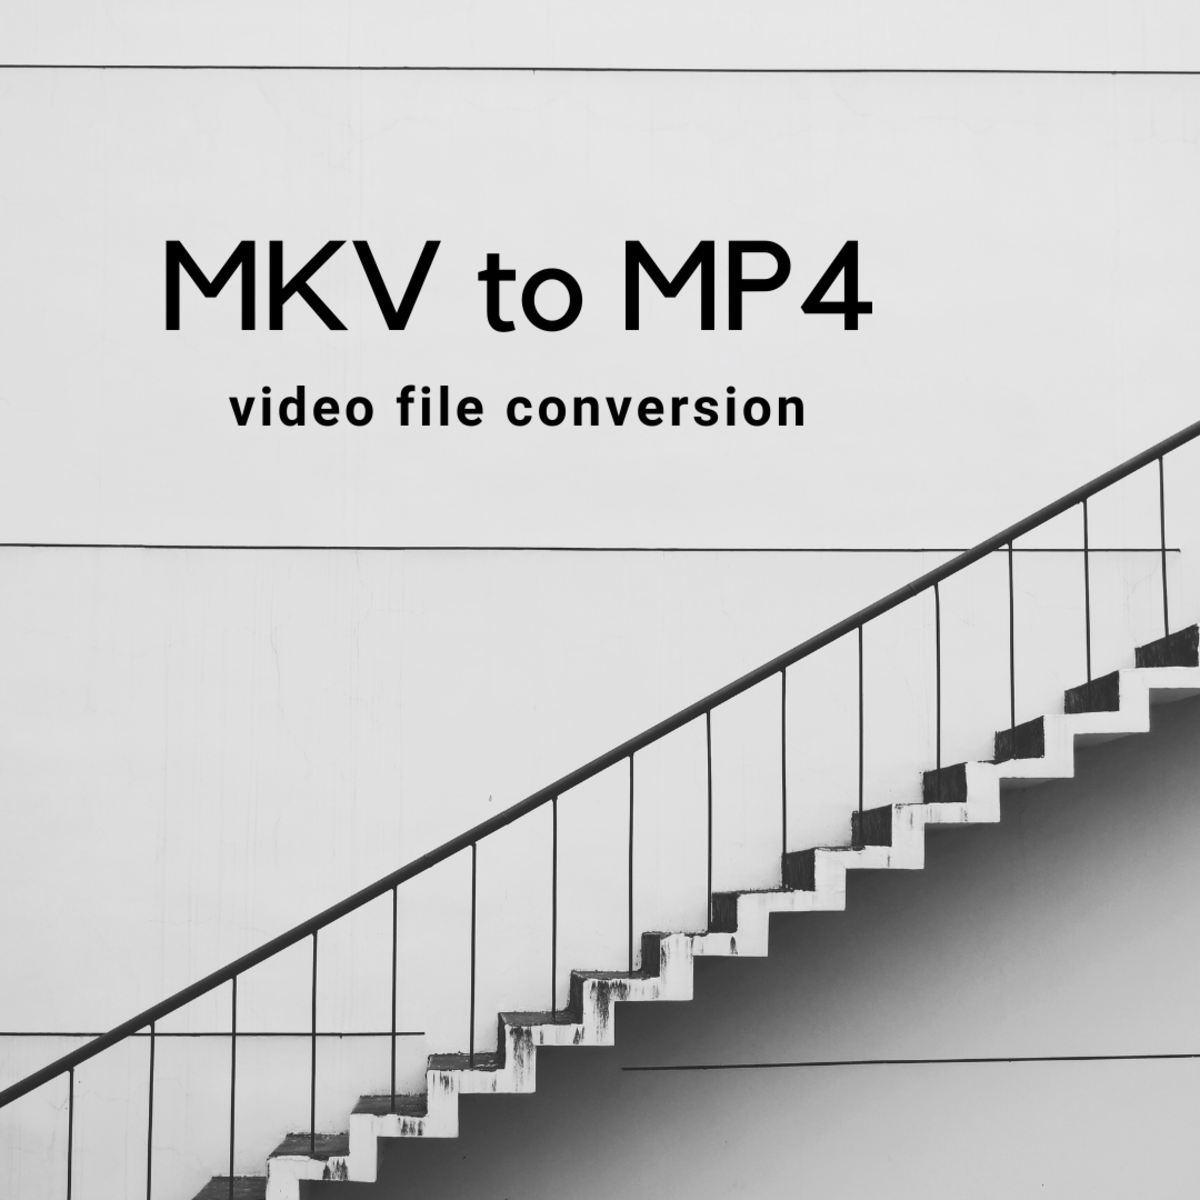 How to Convert Video Files From MKV to MP4